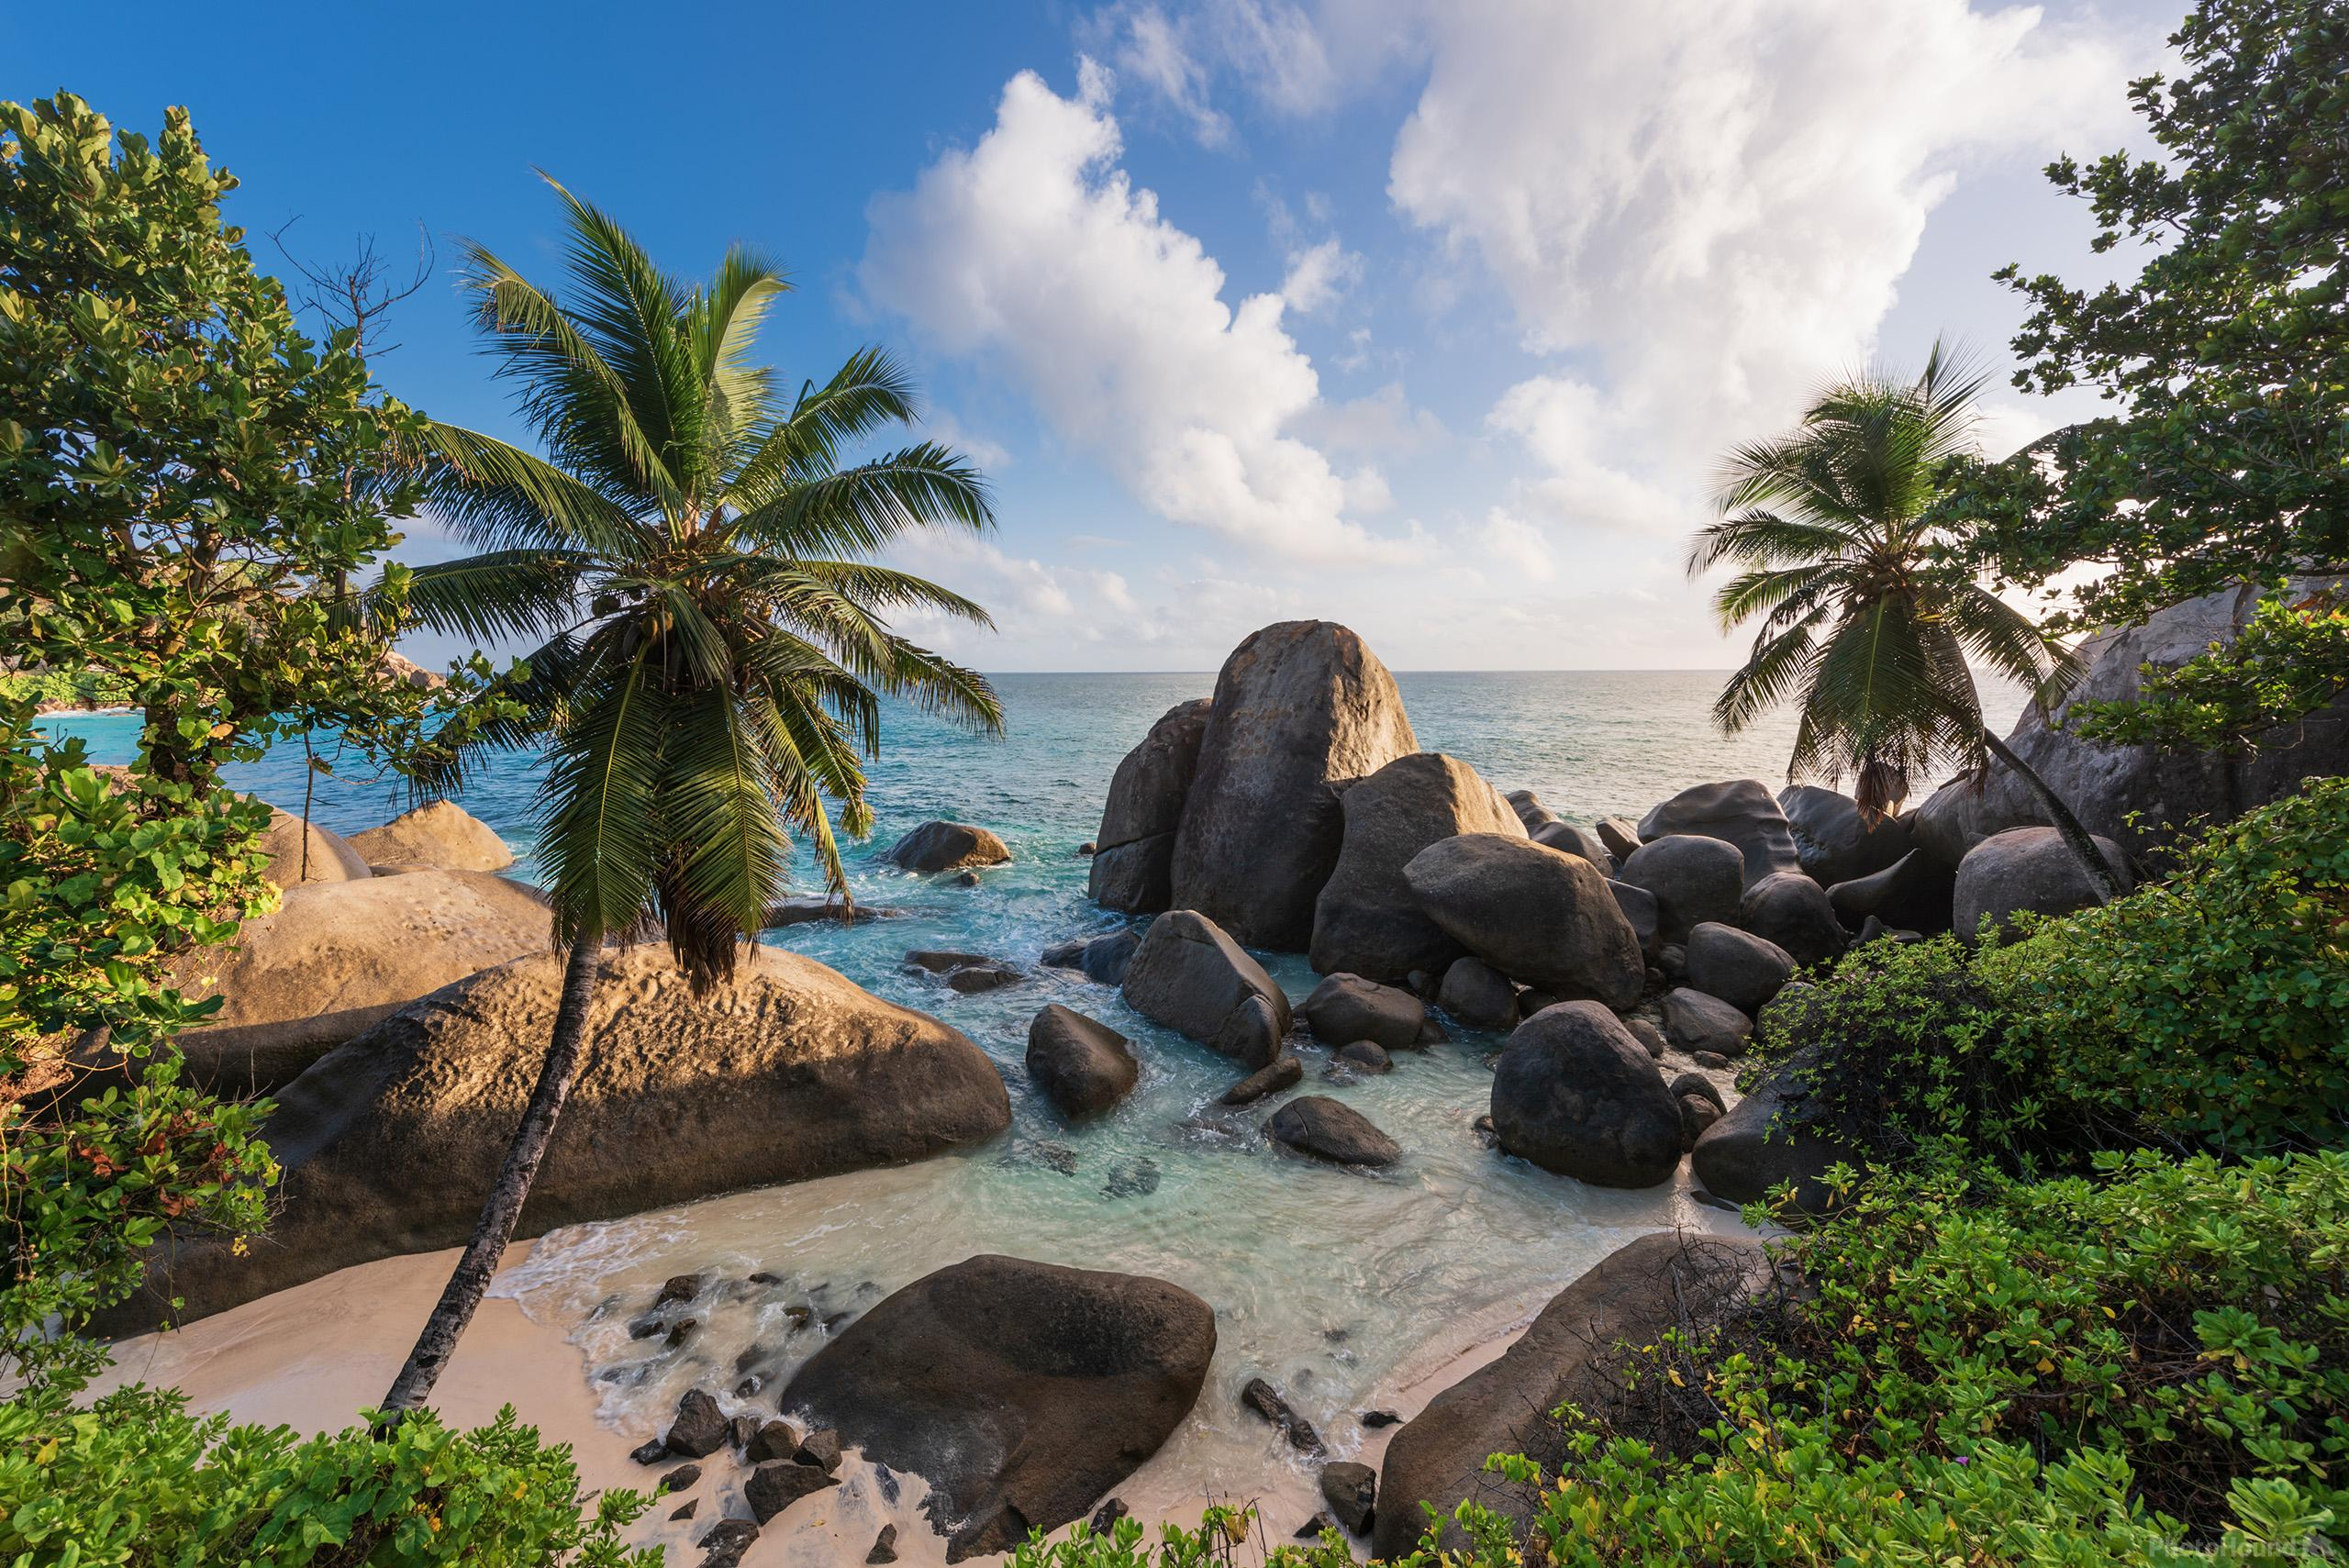 Seychelles photo locations